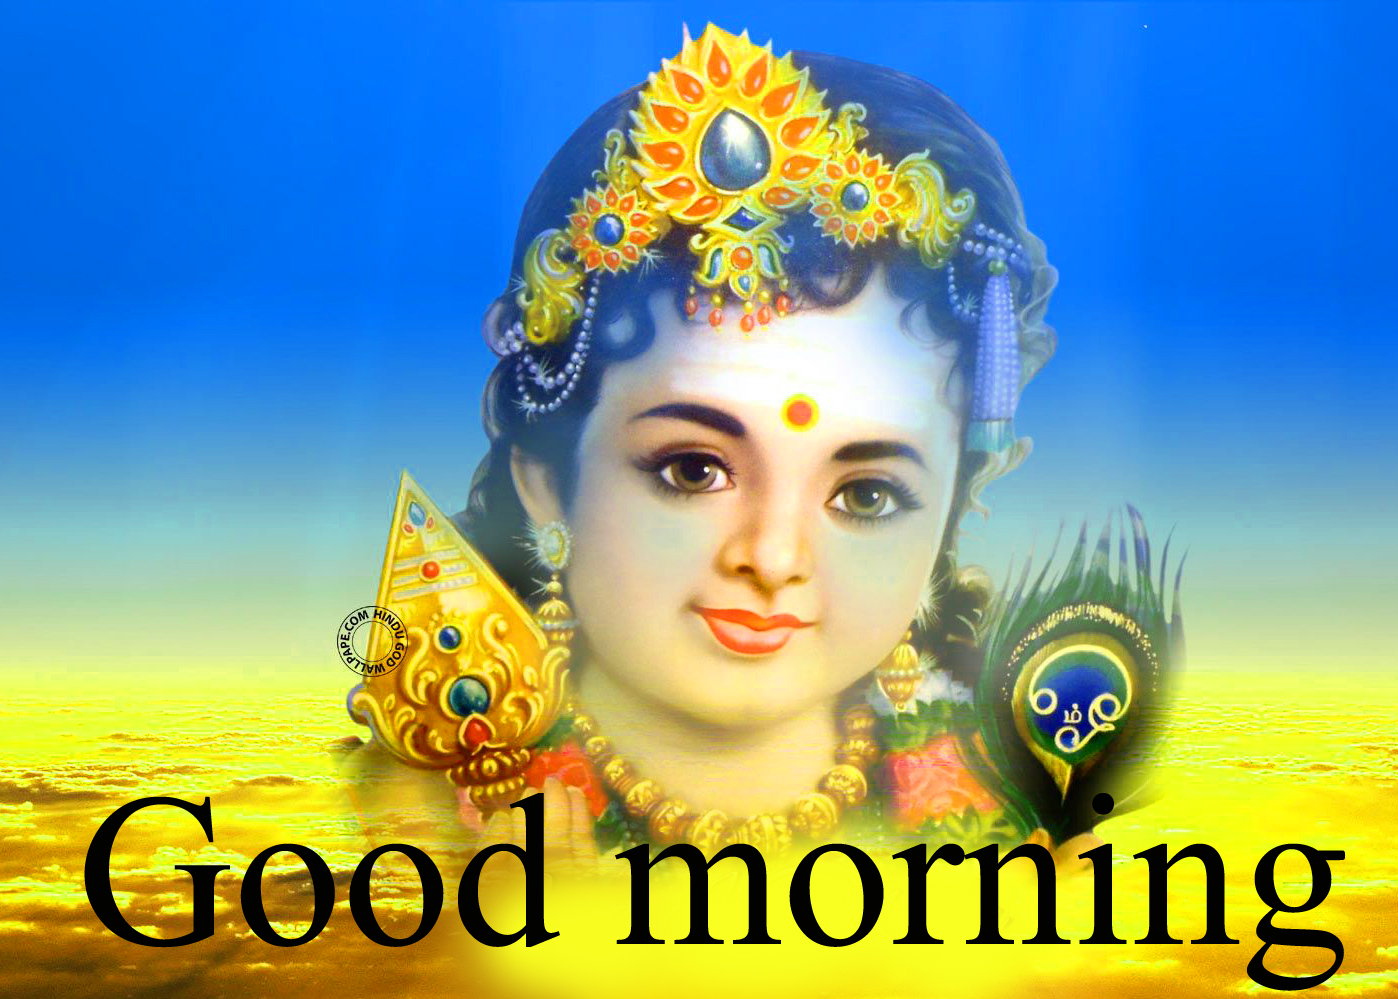 God Good Morning Pictures Images Photo Wallpaper Free Download